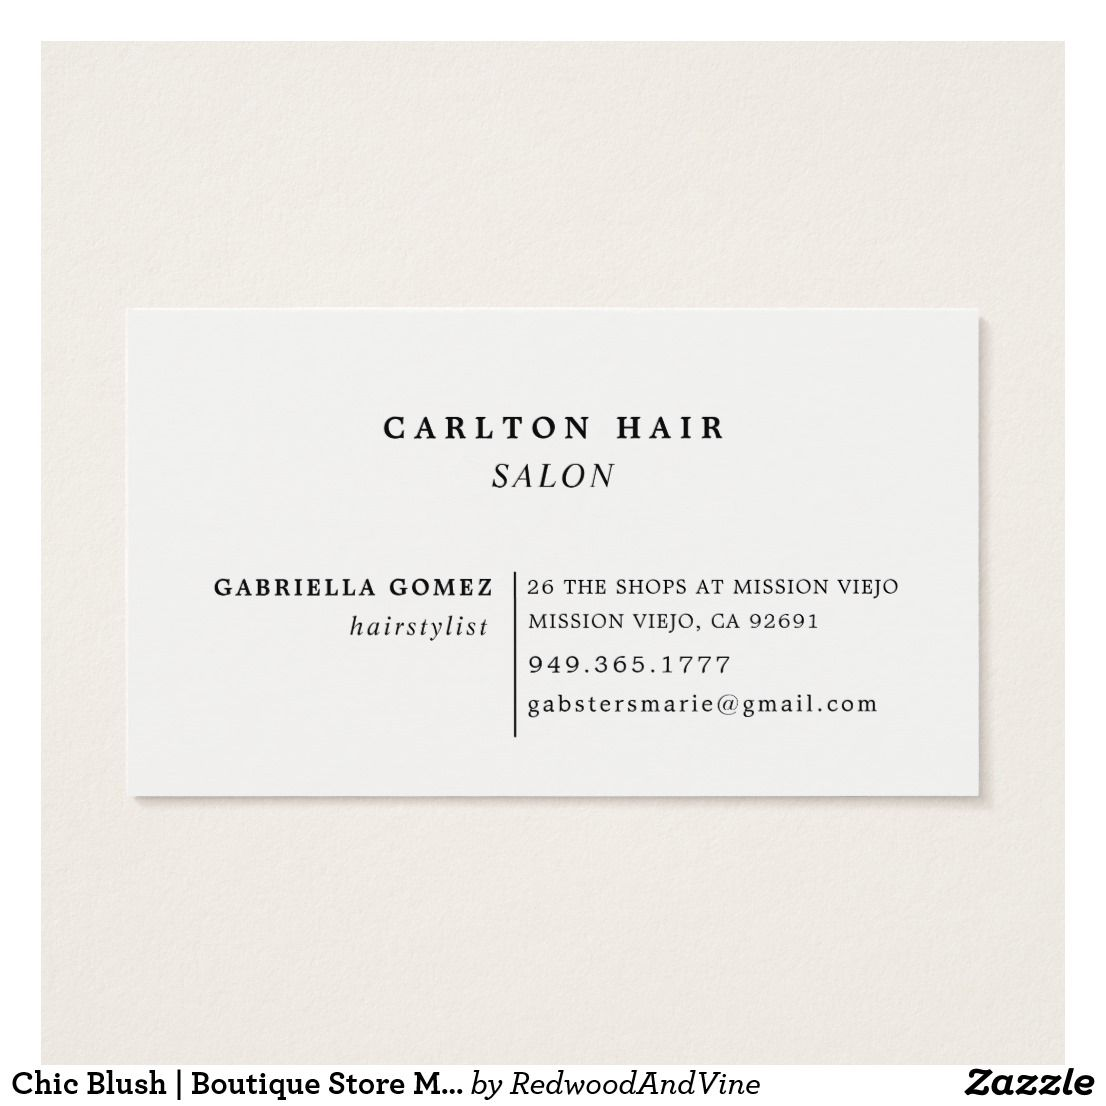 Chic Blush | Boutique Store Manager Business Card | Business cards ...